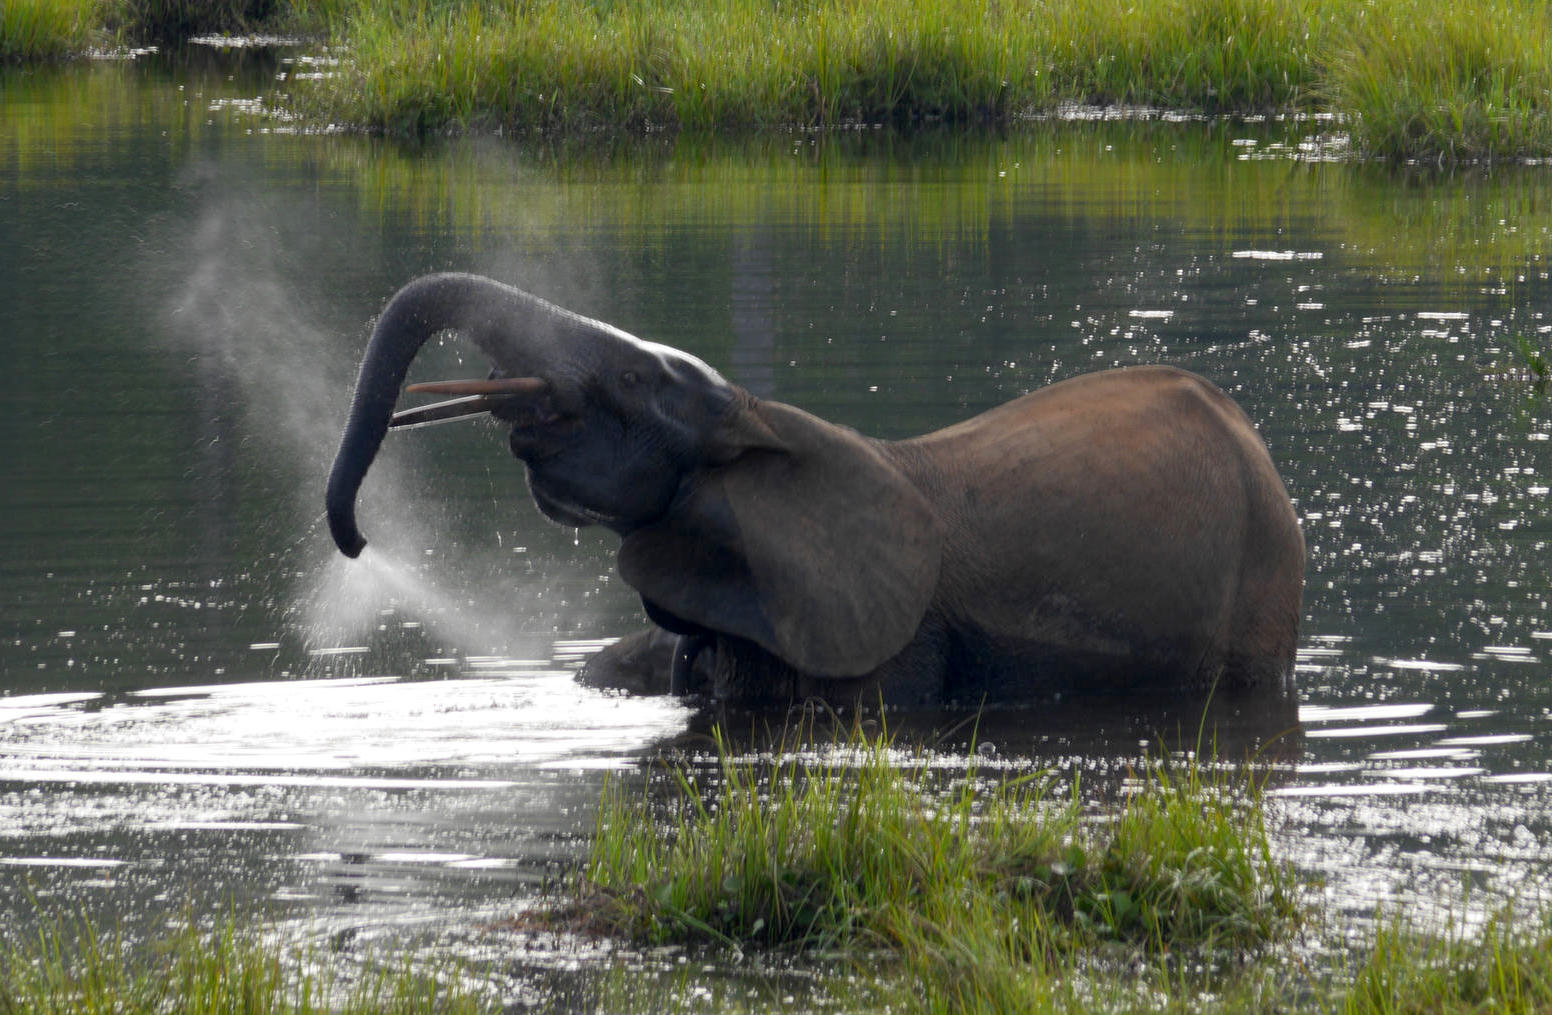 """Perpetuating legal trade only serves to stimulate this consumer demand and further threaten wild elephant populations."" Photo: Dirck Byler / USFWS"